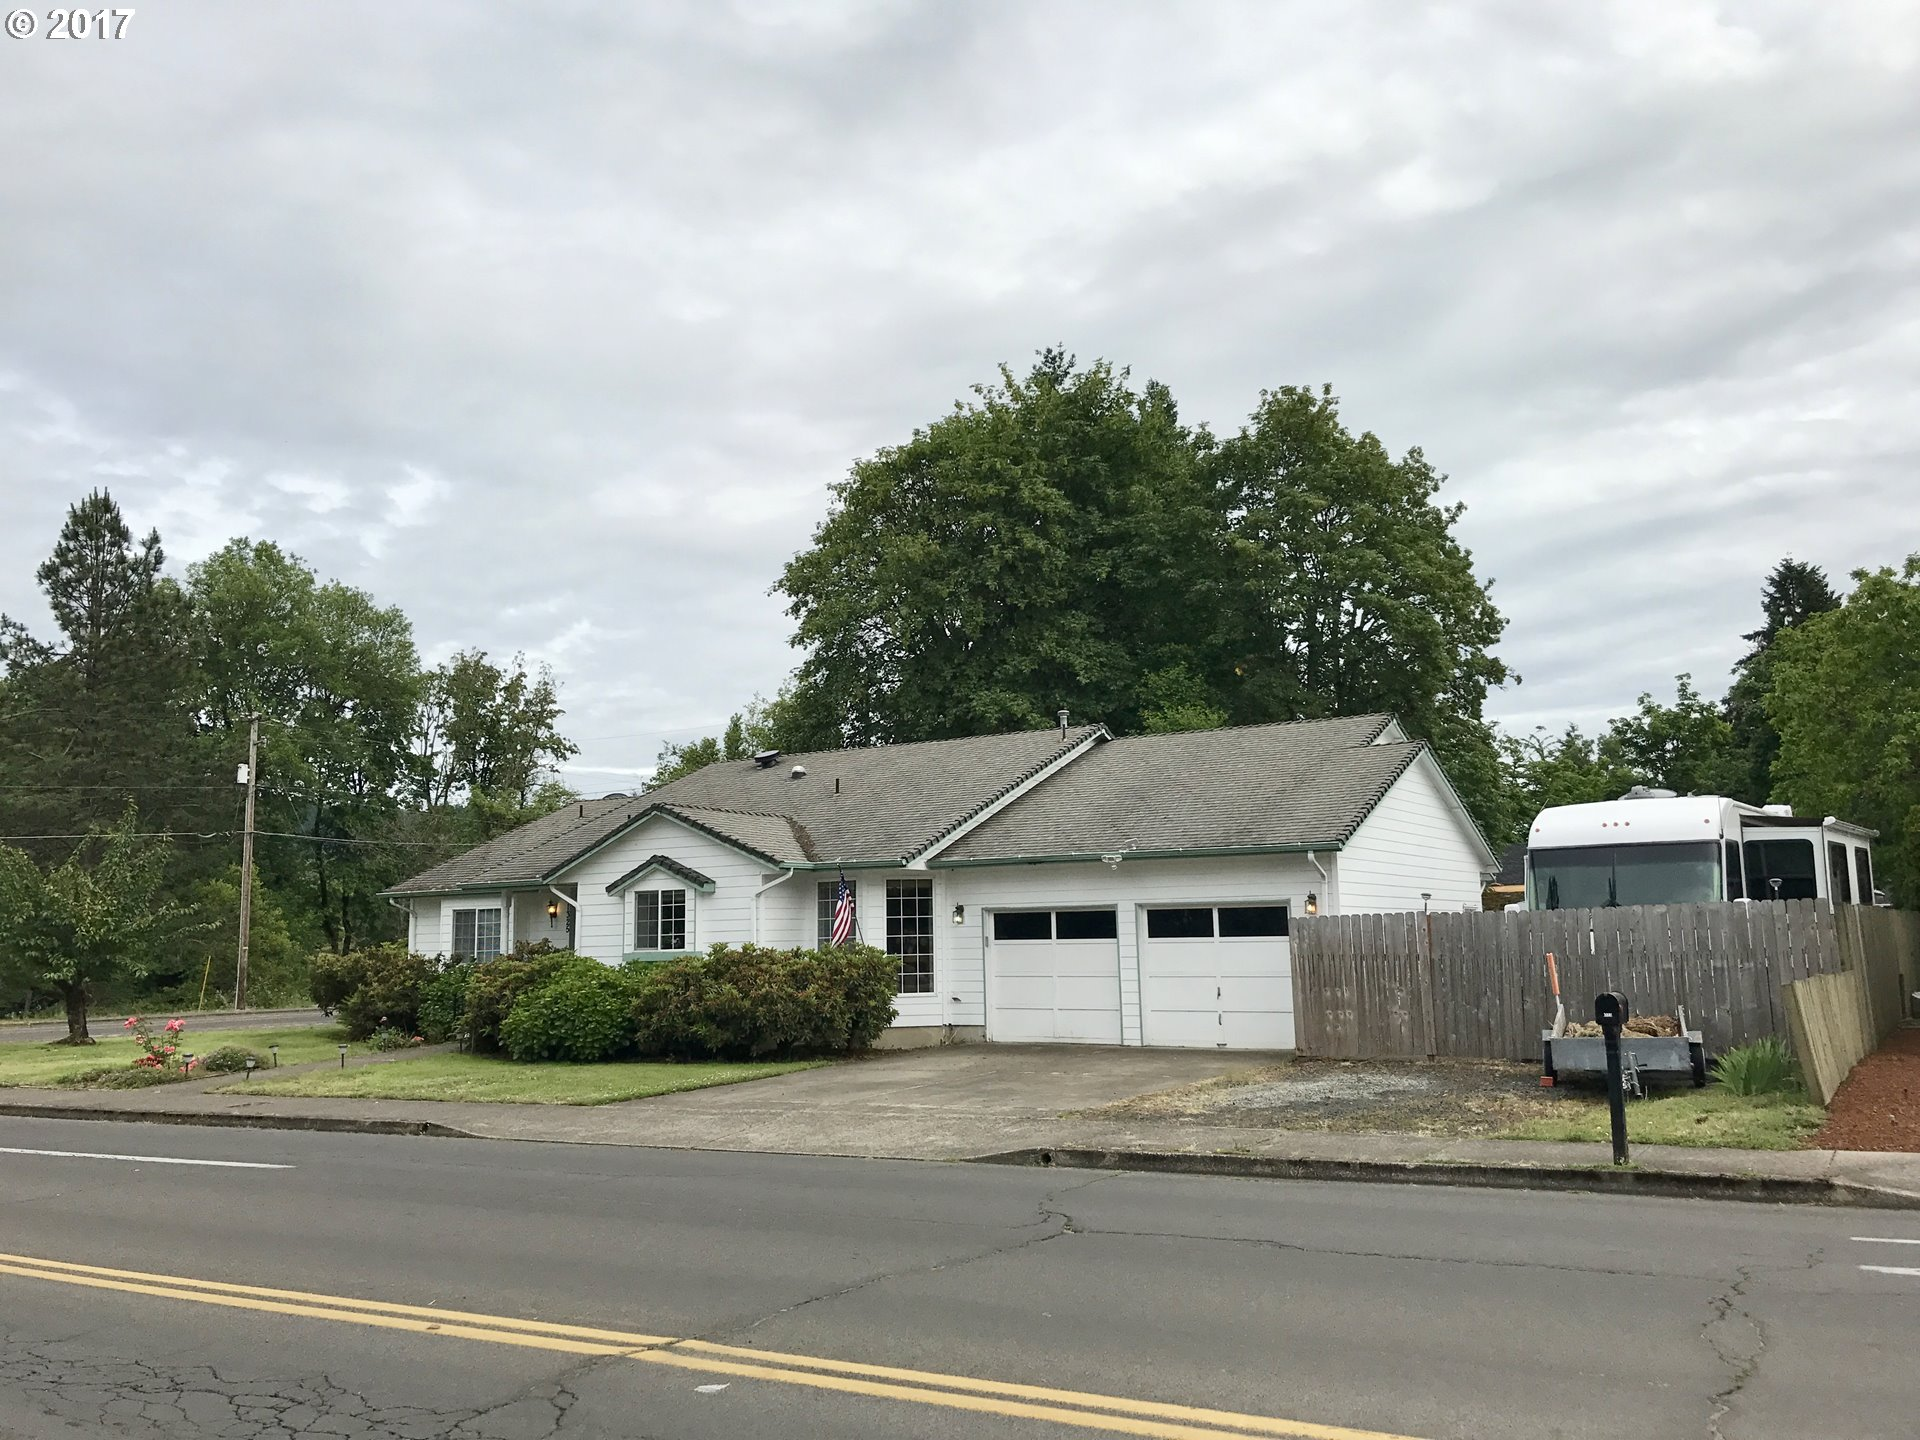 1325 W HARRISON AVE Cottage Grove, OR 97424 - MLS #: 17663215